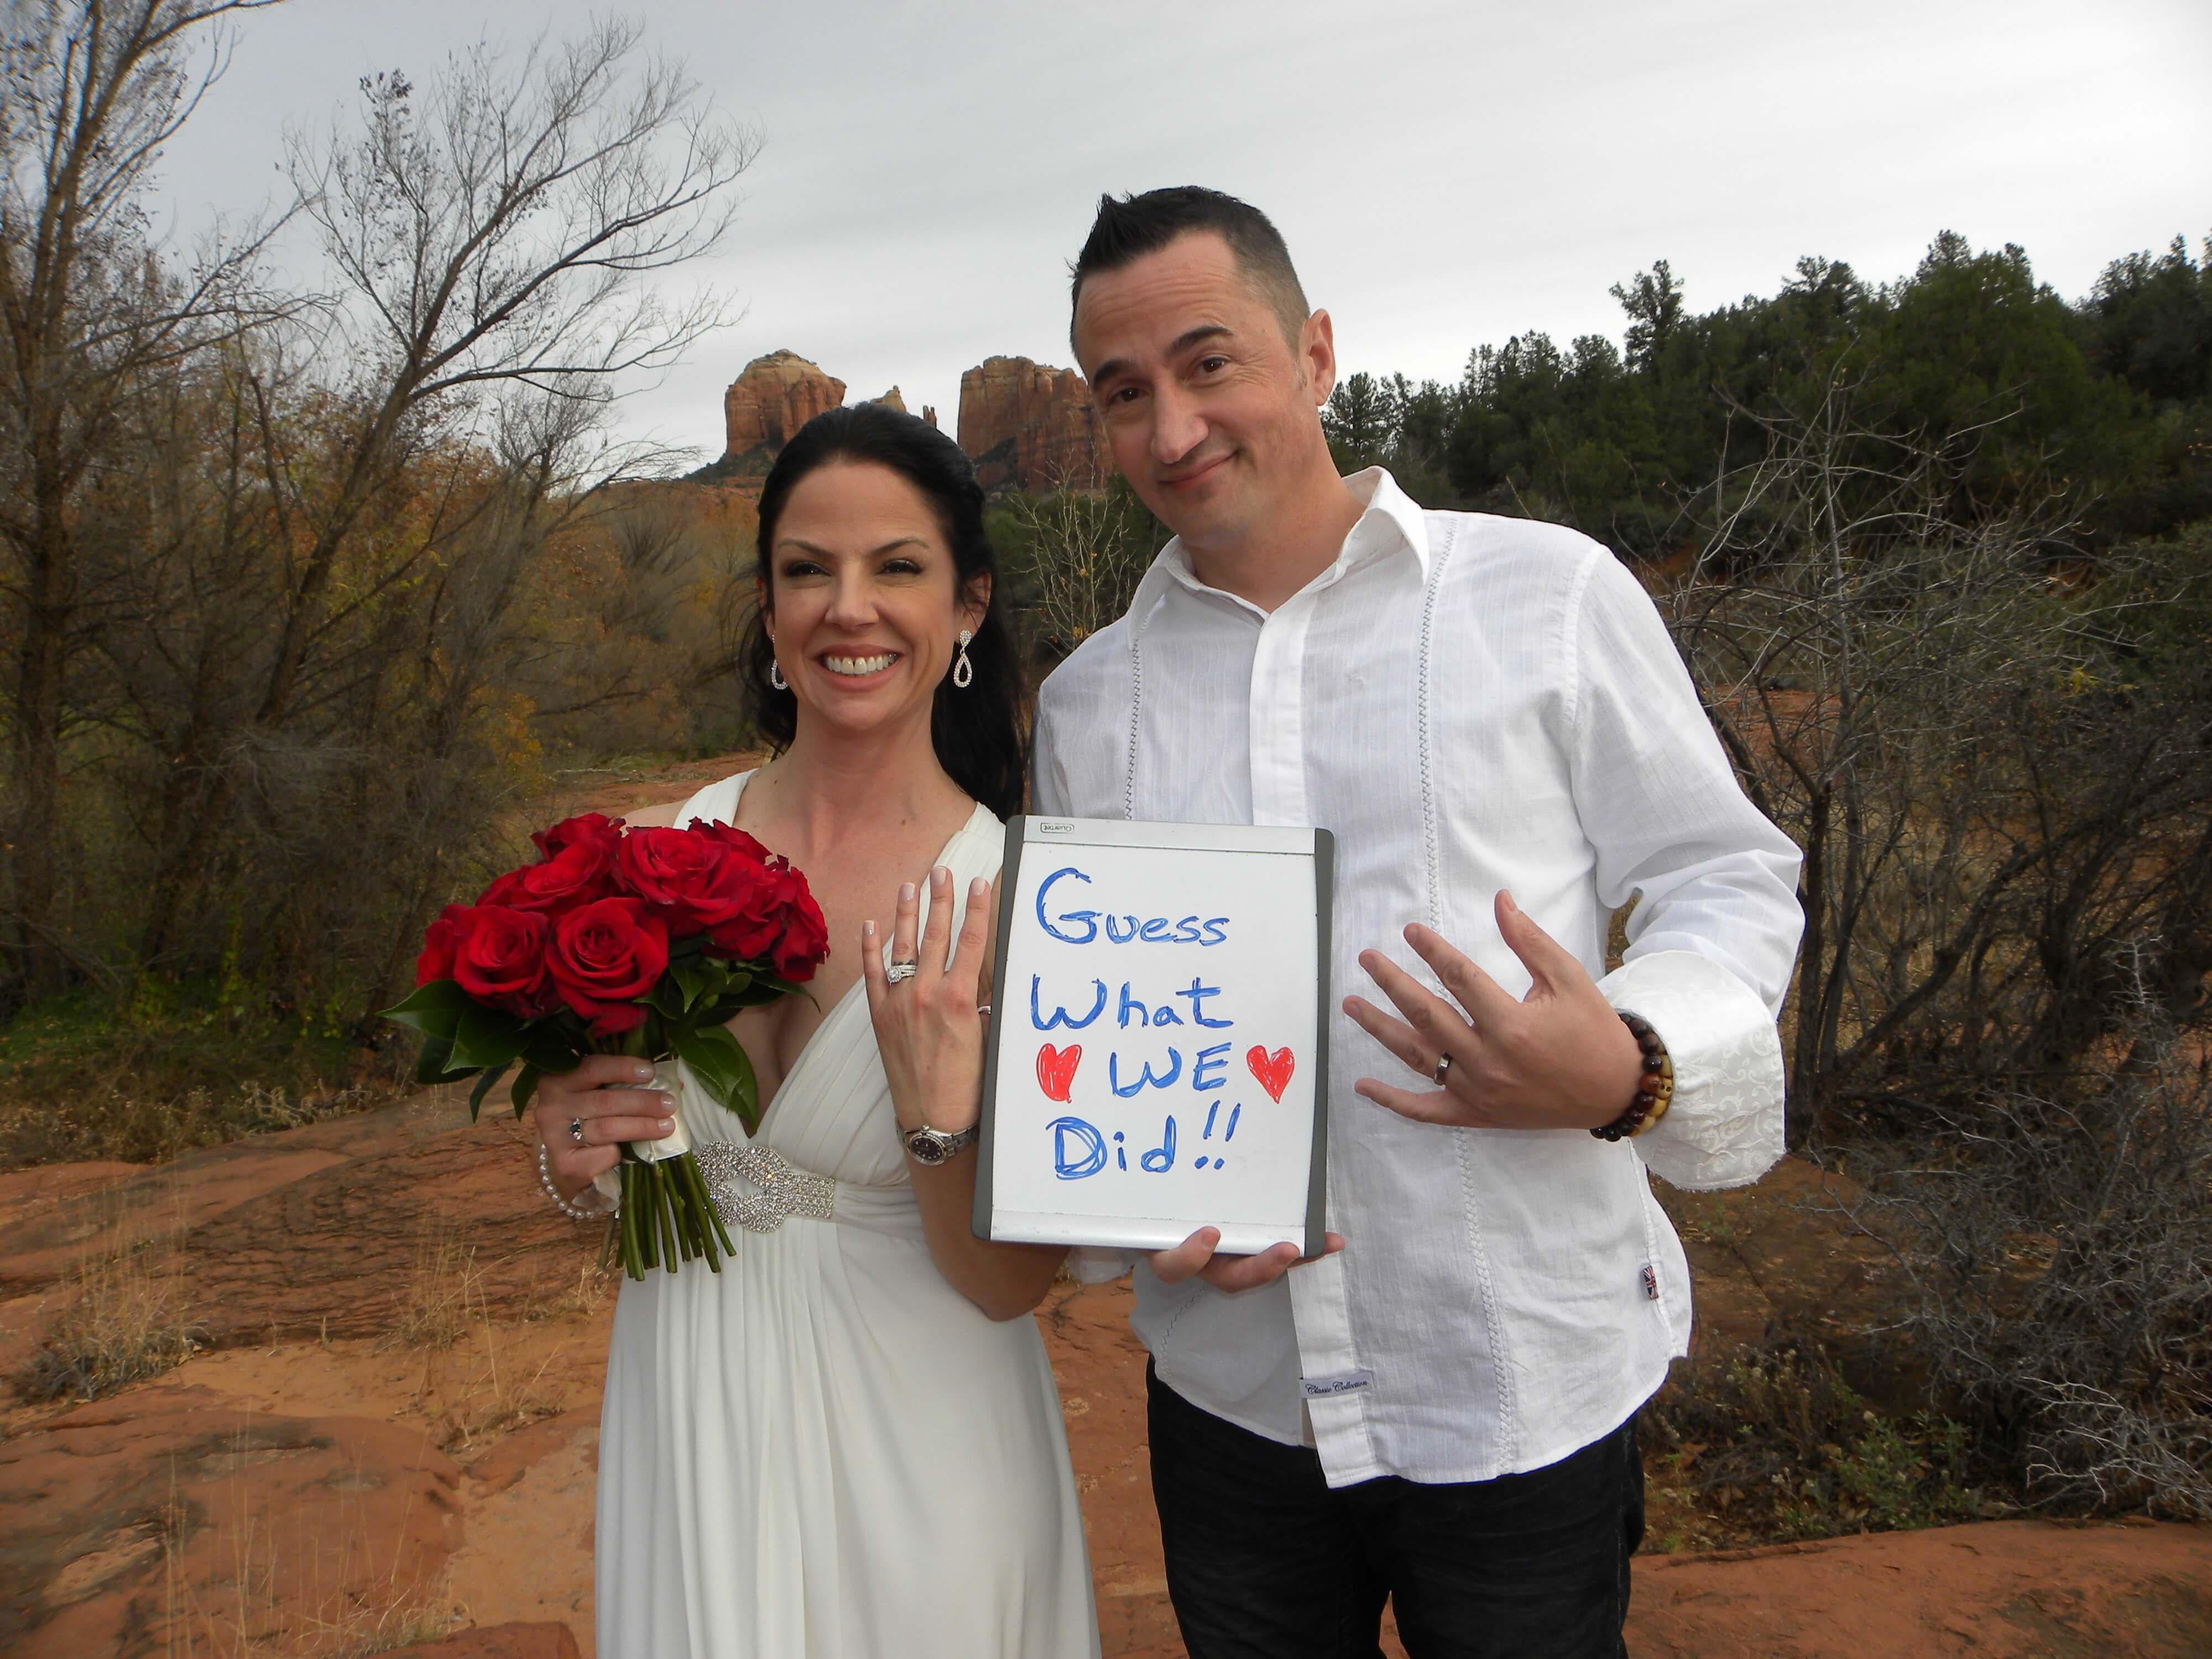 Sedona Elopement Packages are Easy and Affordable